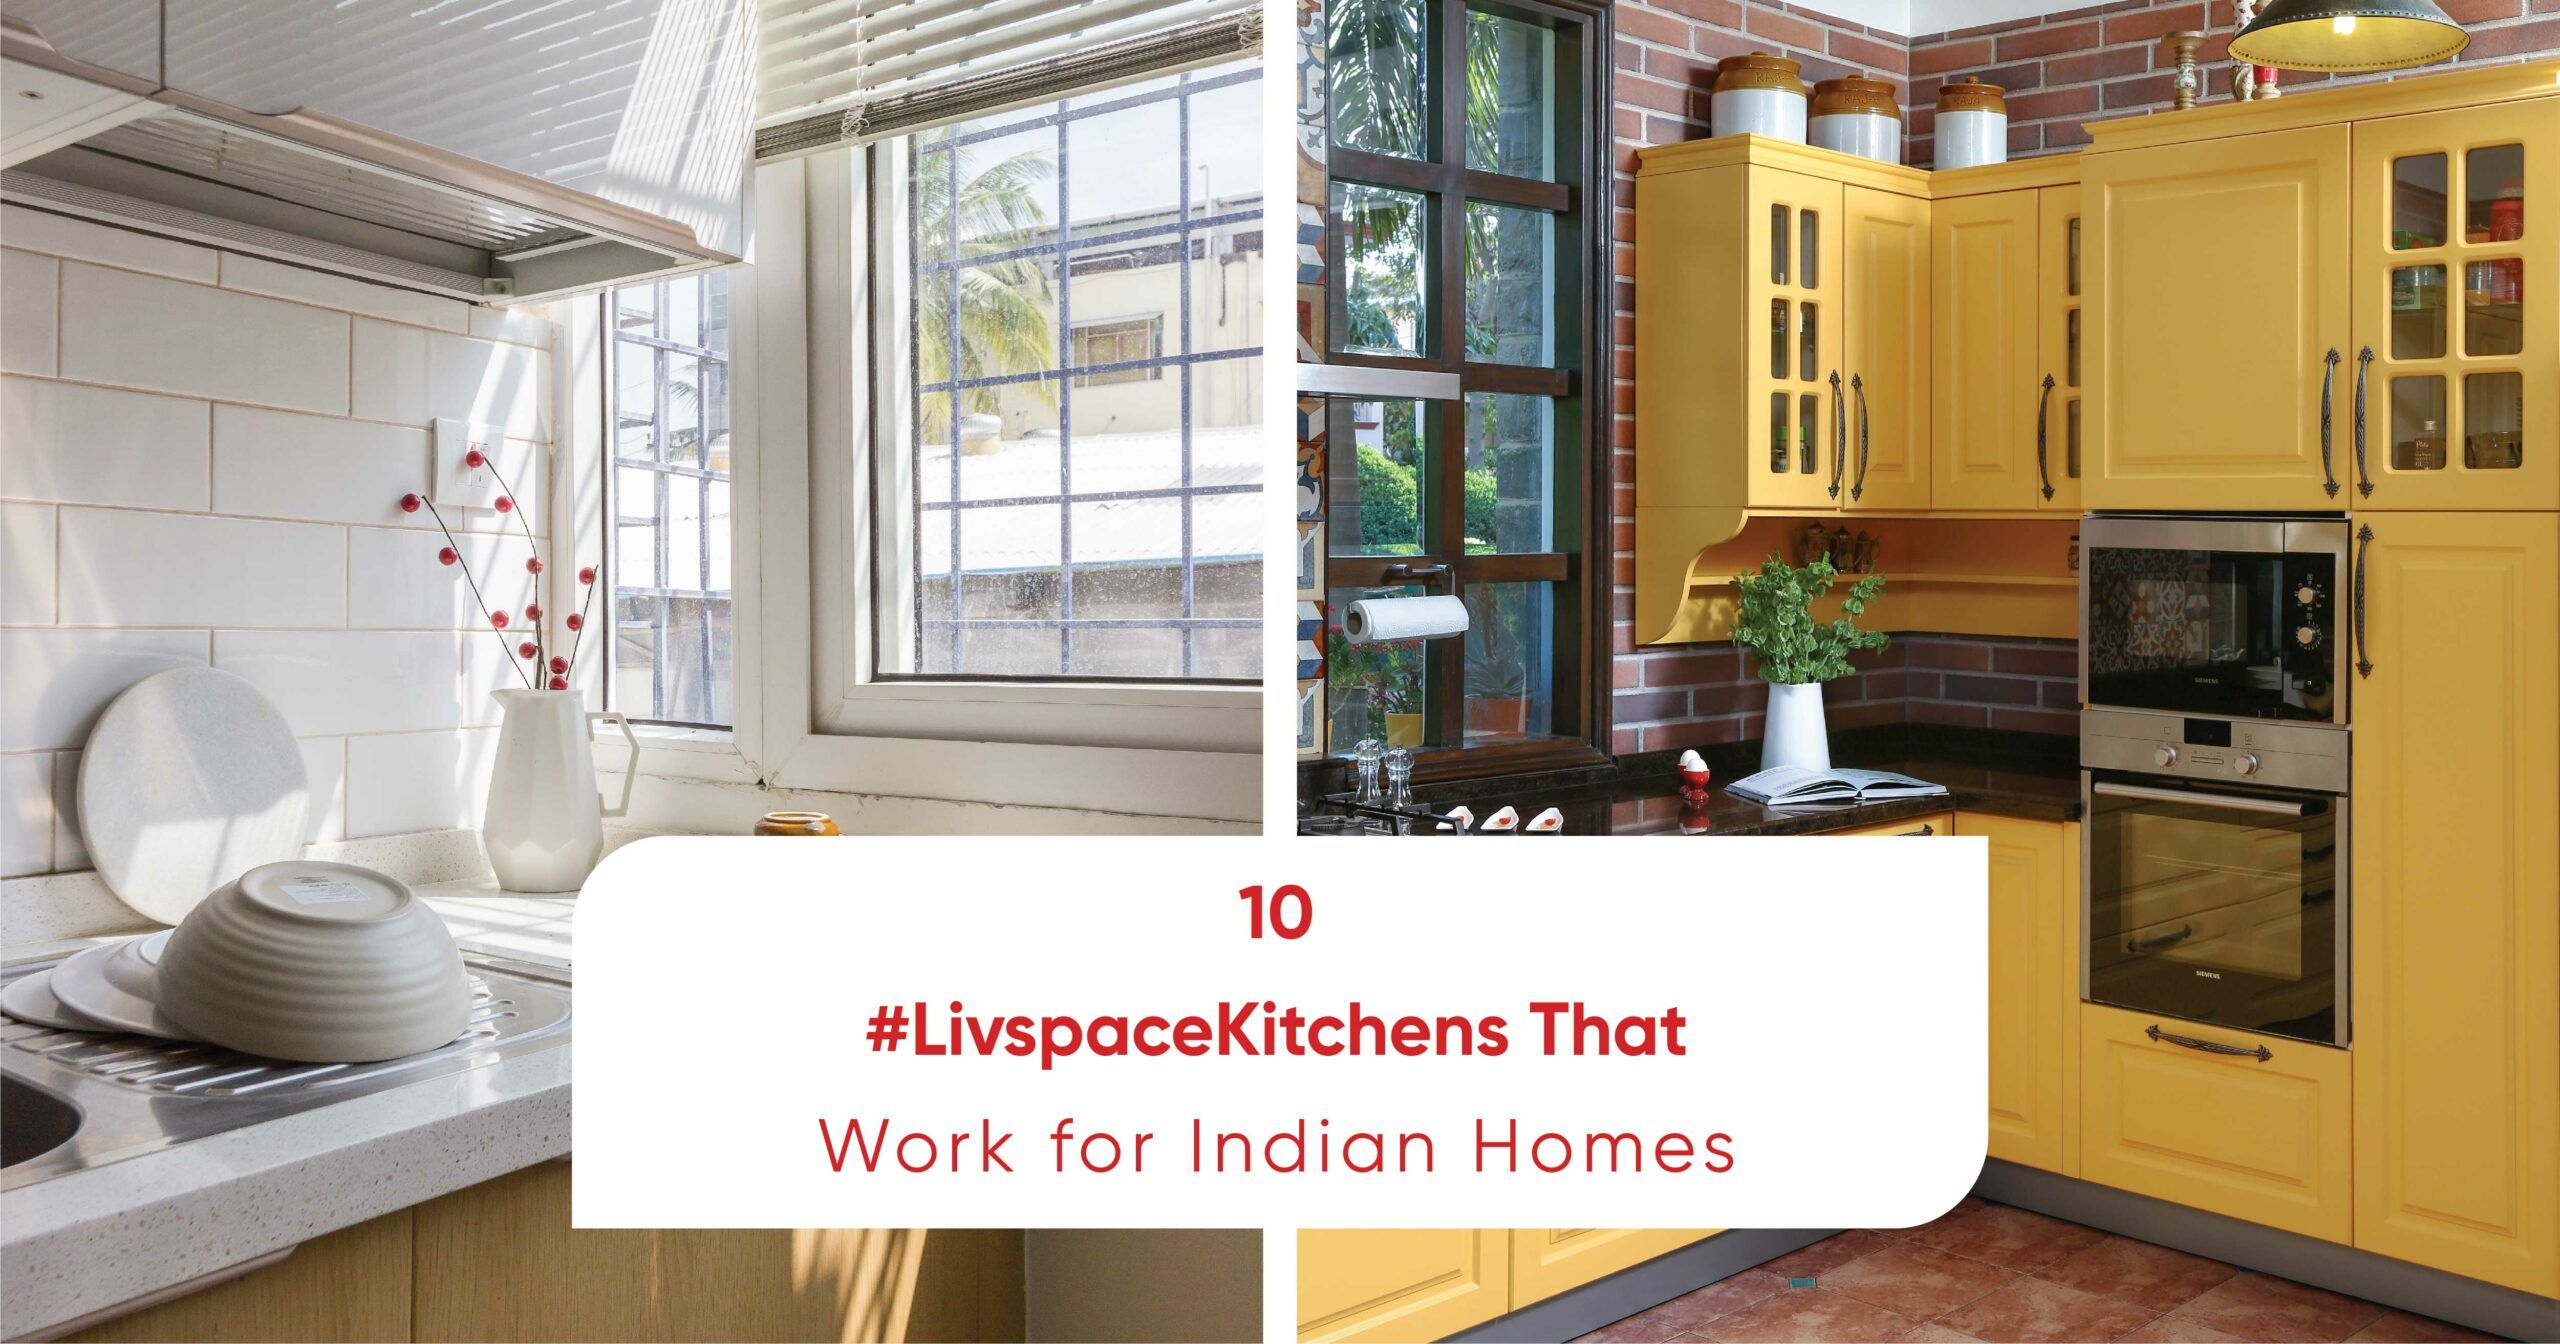 What Kitchen Features Work Best For Desi Cooking